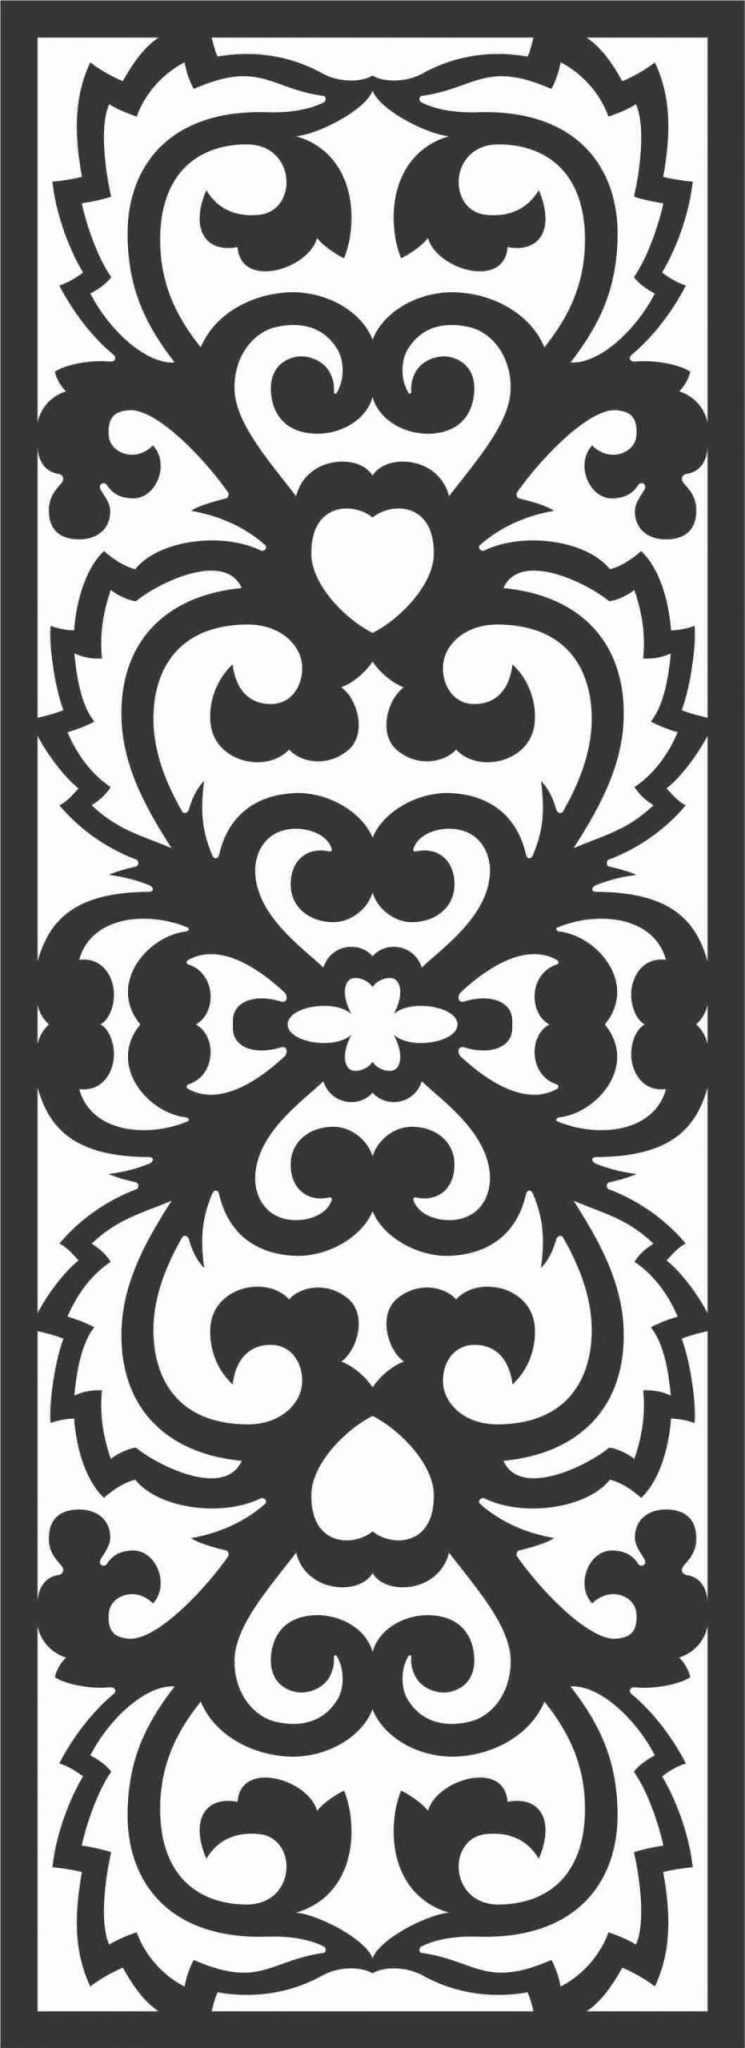 Decorative Screen Patterns For Laser Cutting 46 Free DXF File